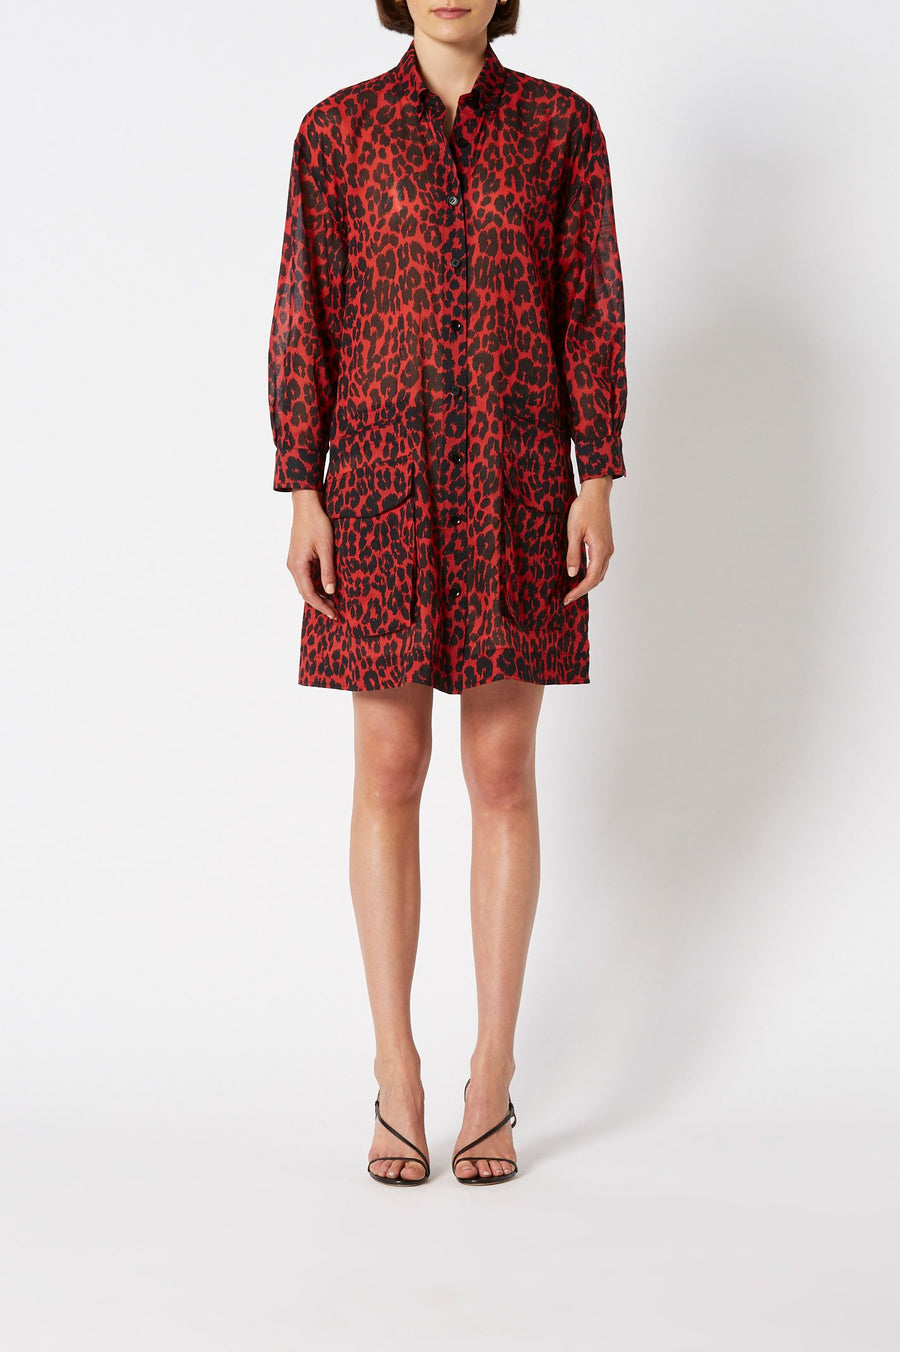 Animal Print Pocket Dress Red, above the knee length, point collar, button down front, pocket detail.